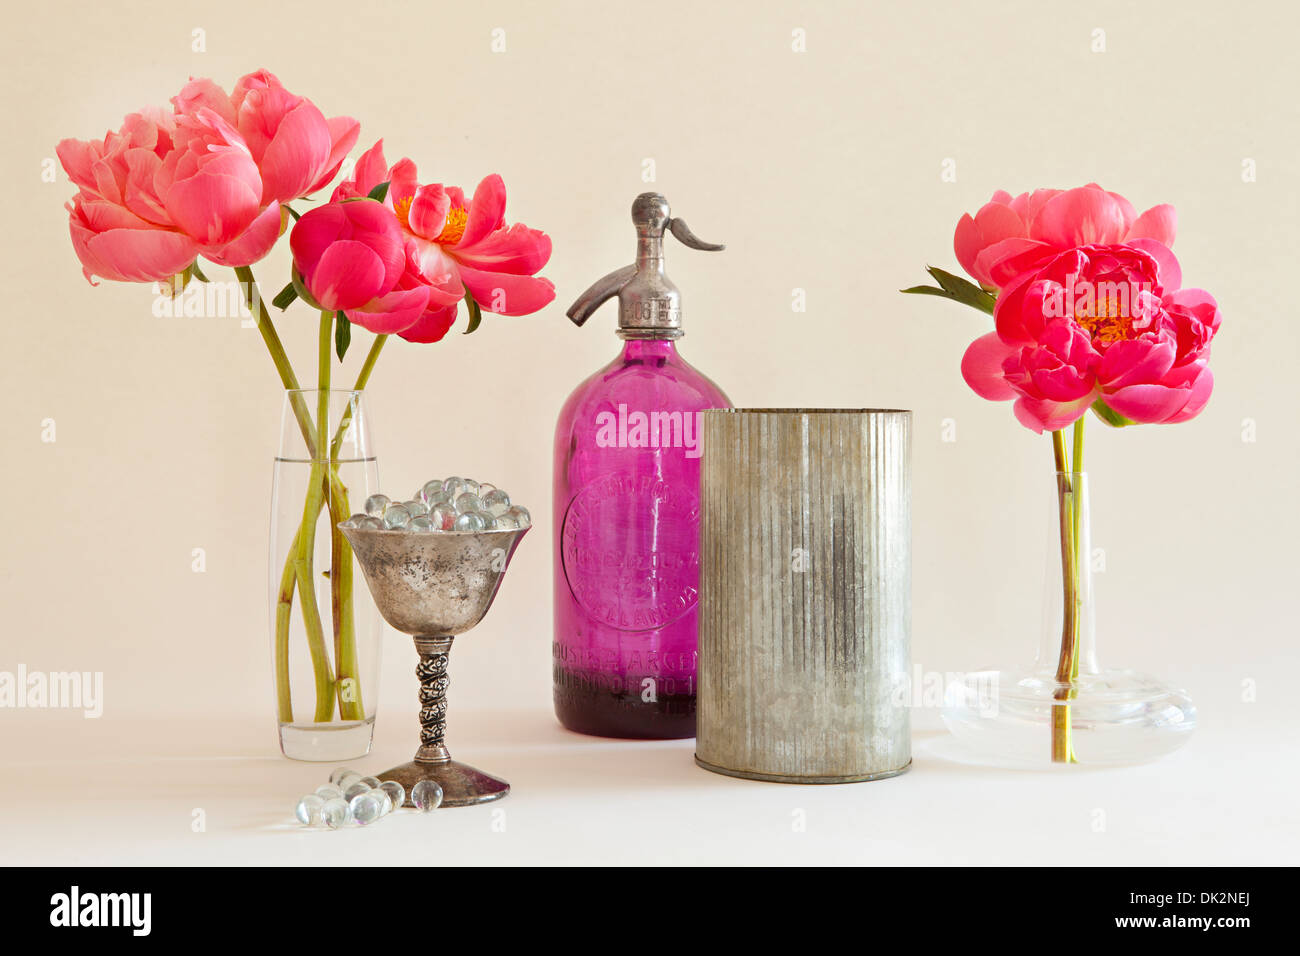 Still life of pink peonies in vases next to seltzer bottle and still life of pink peonies in vases next to seltzer bottle and silver containers reviewsmspy